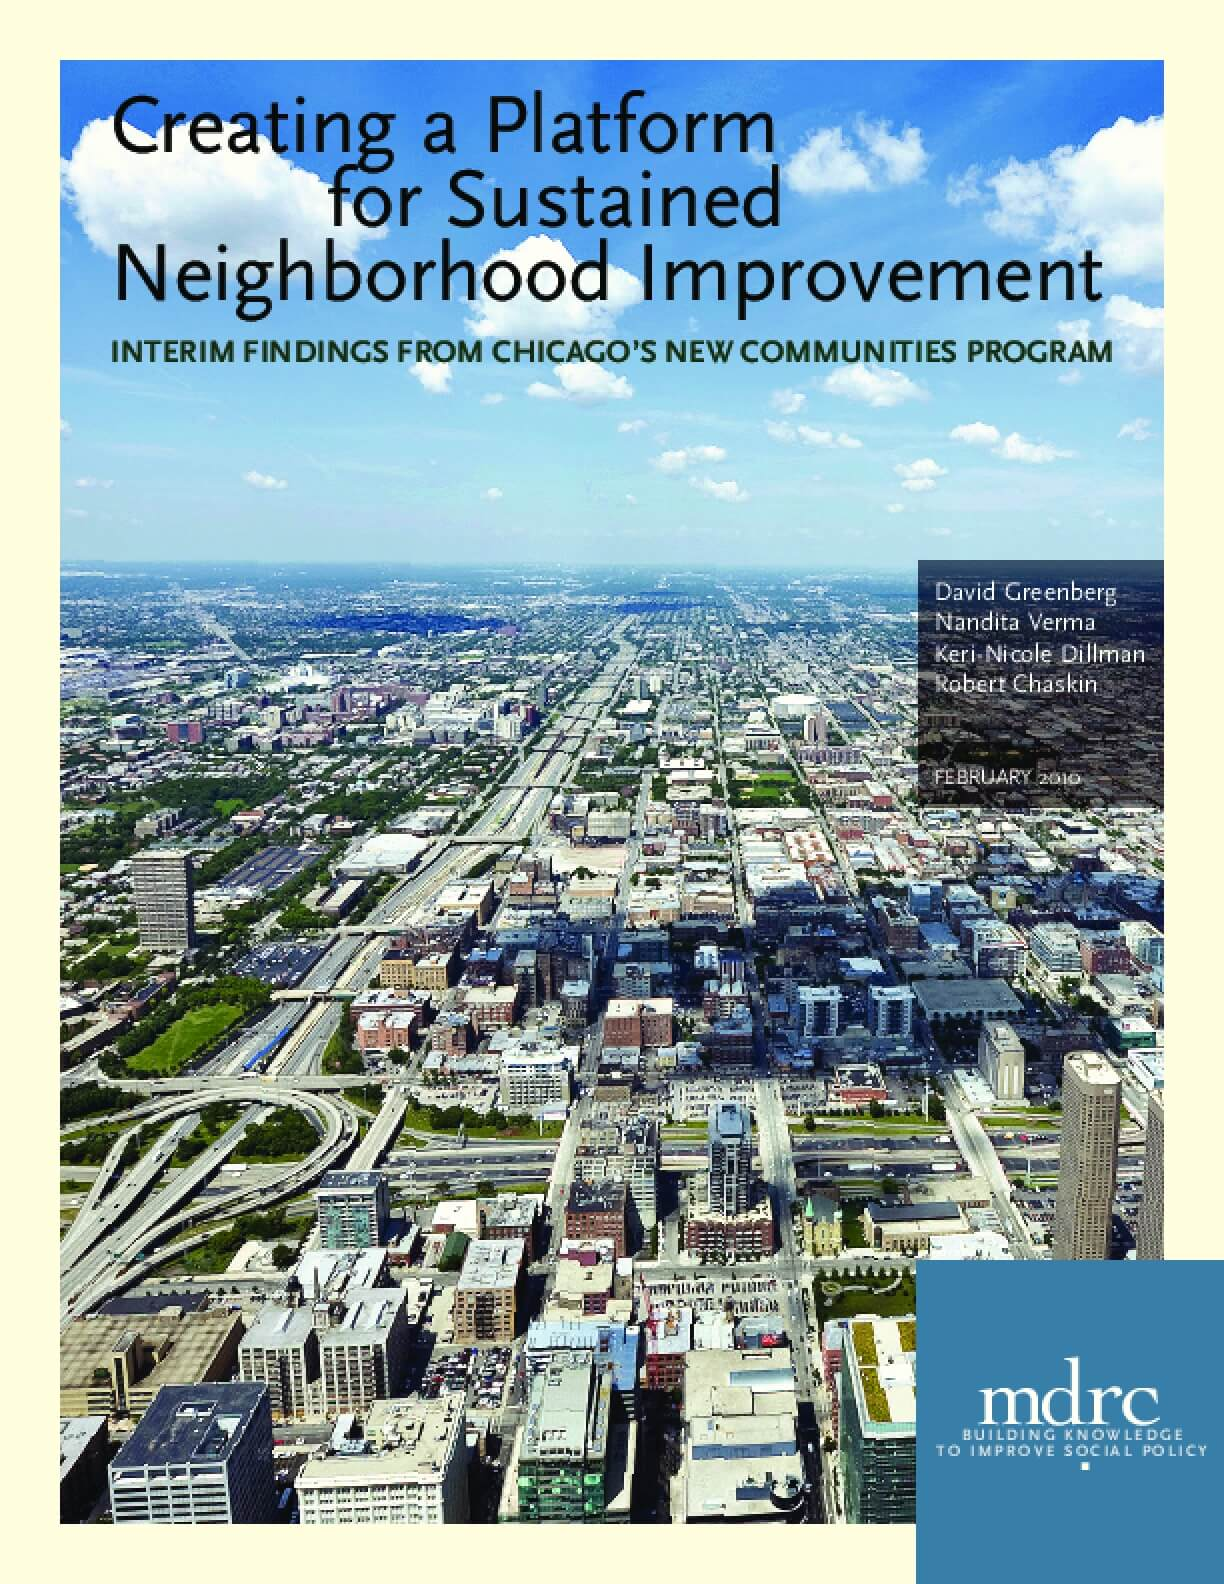 Creating a Platform for Sustained Neighborhood Improvement: Interim Findings from Chicago's New Communities Program